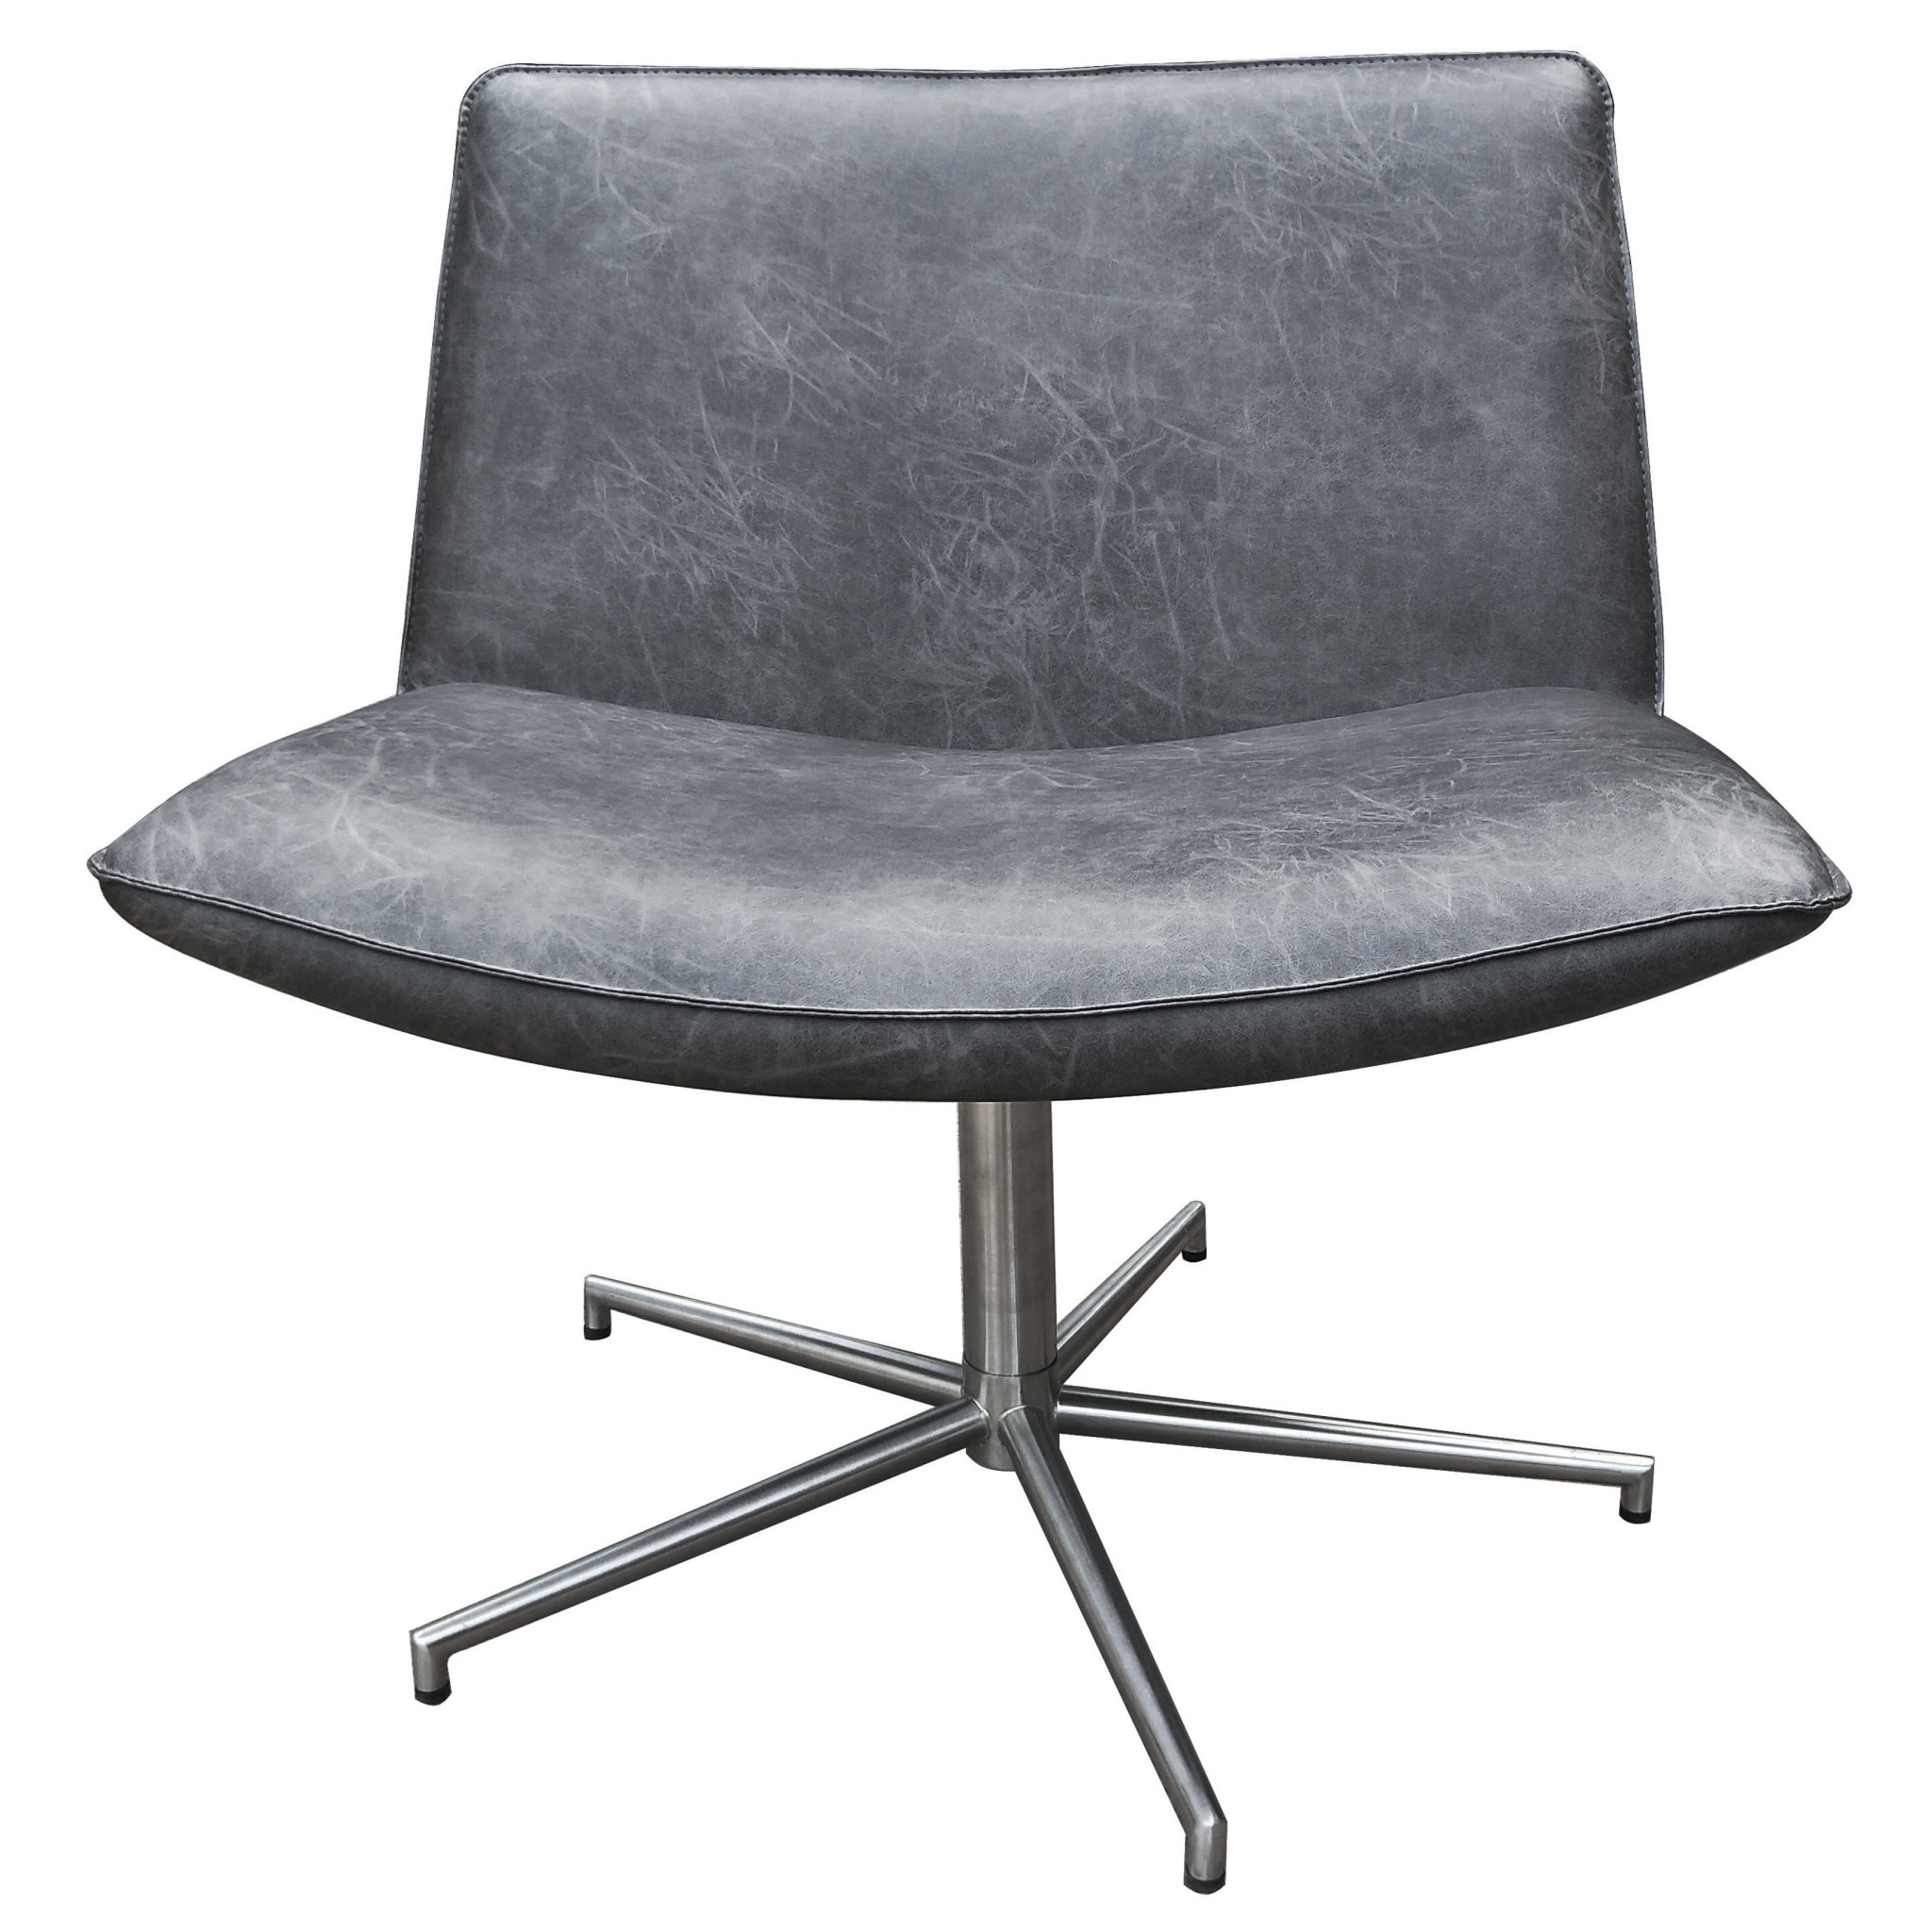 BELFAST CHAIR GRAY - disc